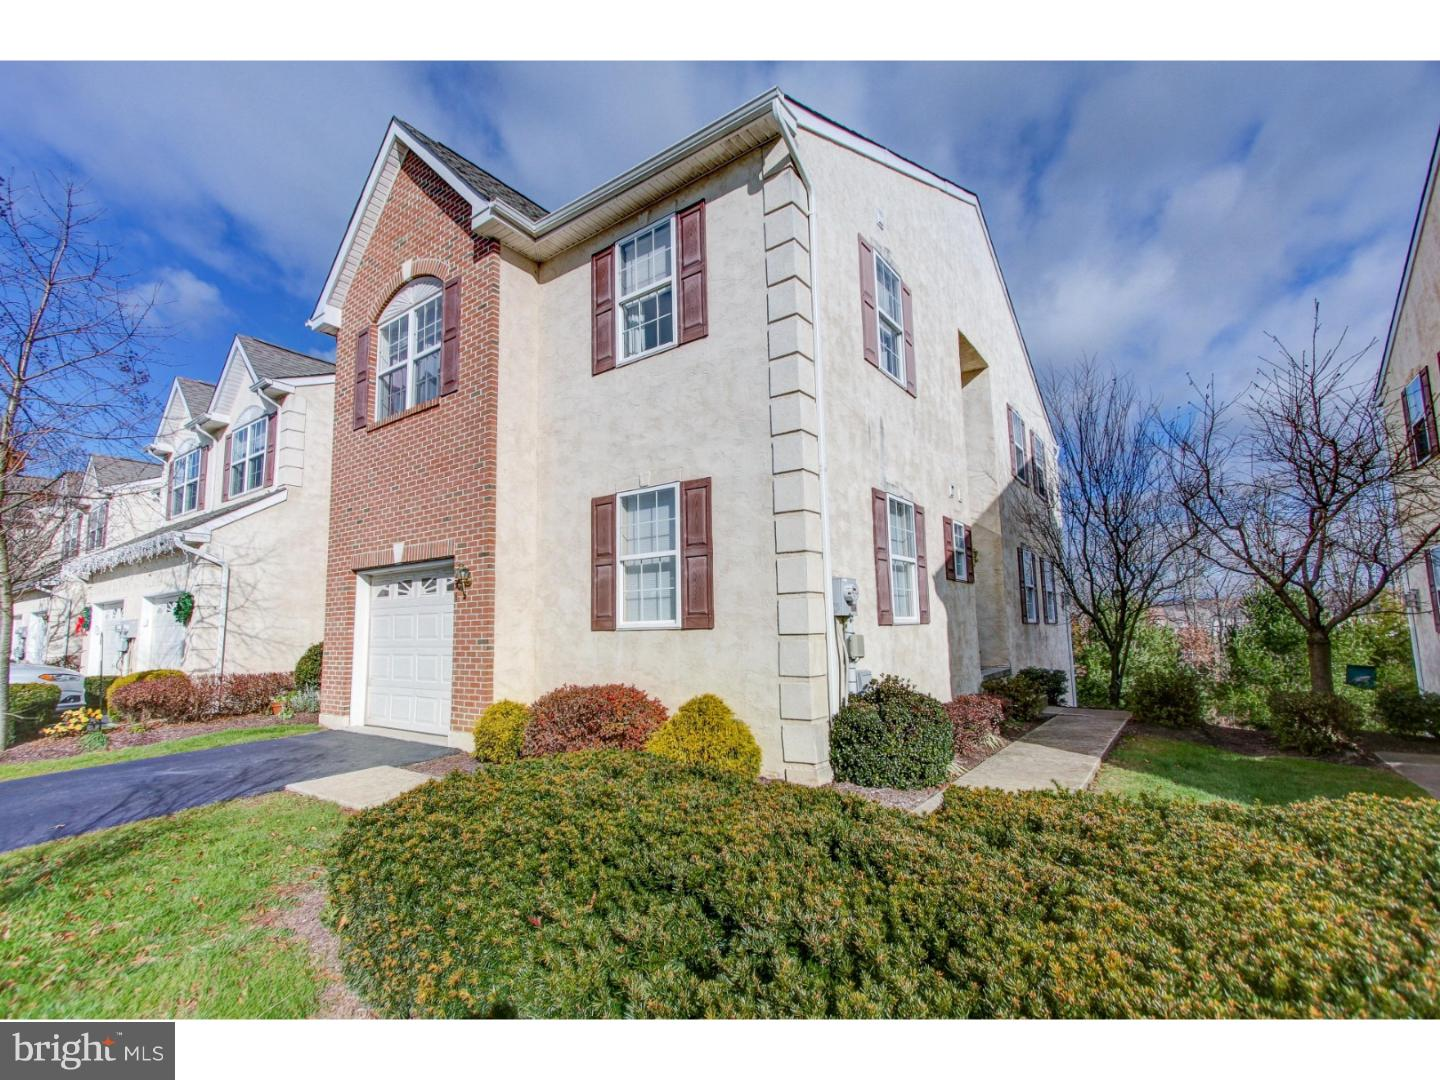 934 VANGUARD DRIVE, RED HILL, PA 18076